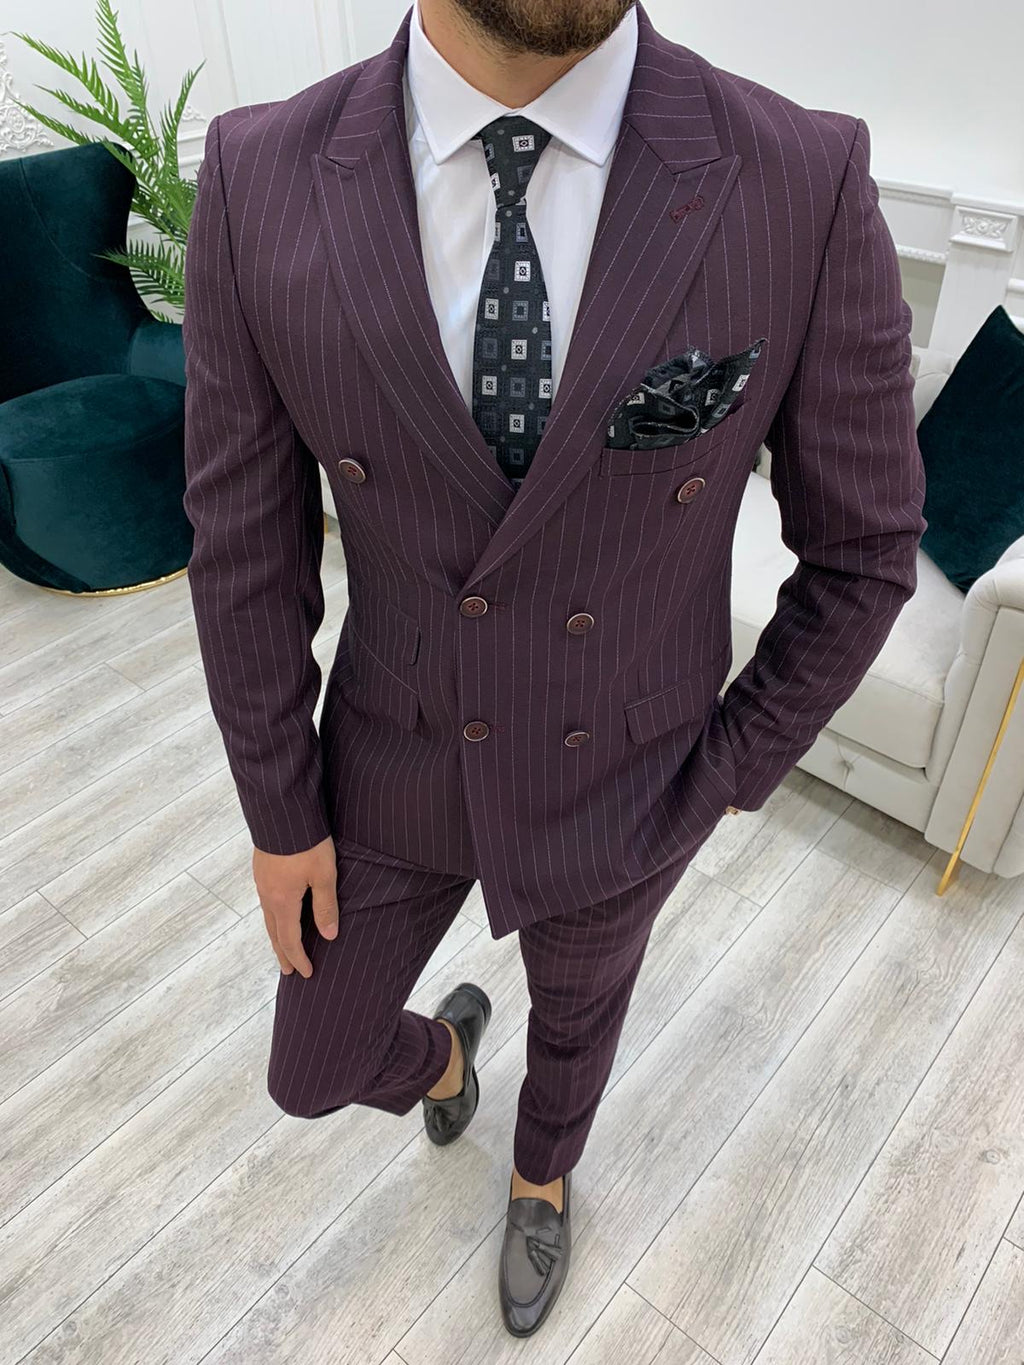 Furino Burgundy Slim Fit Double Breasted Pinstripe Suit